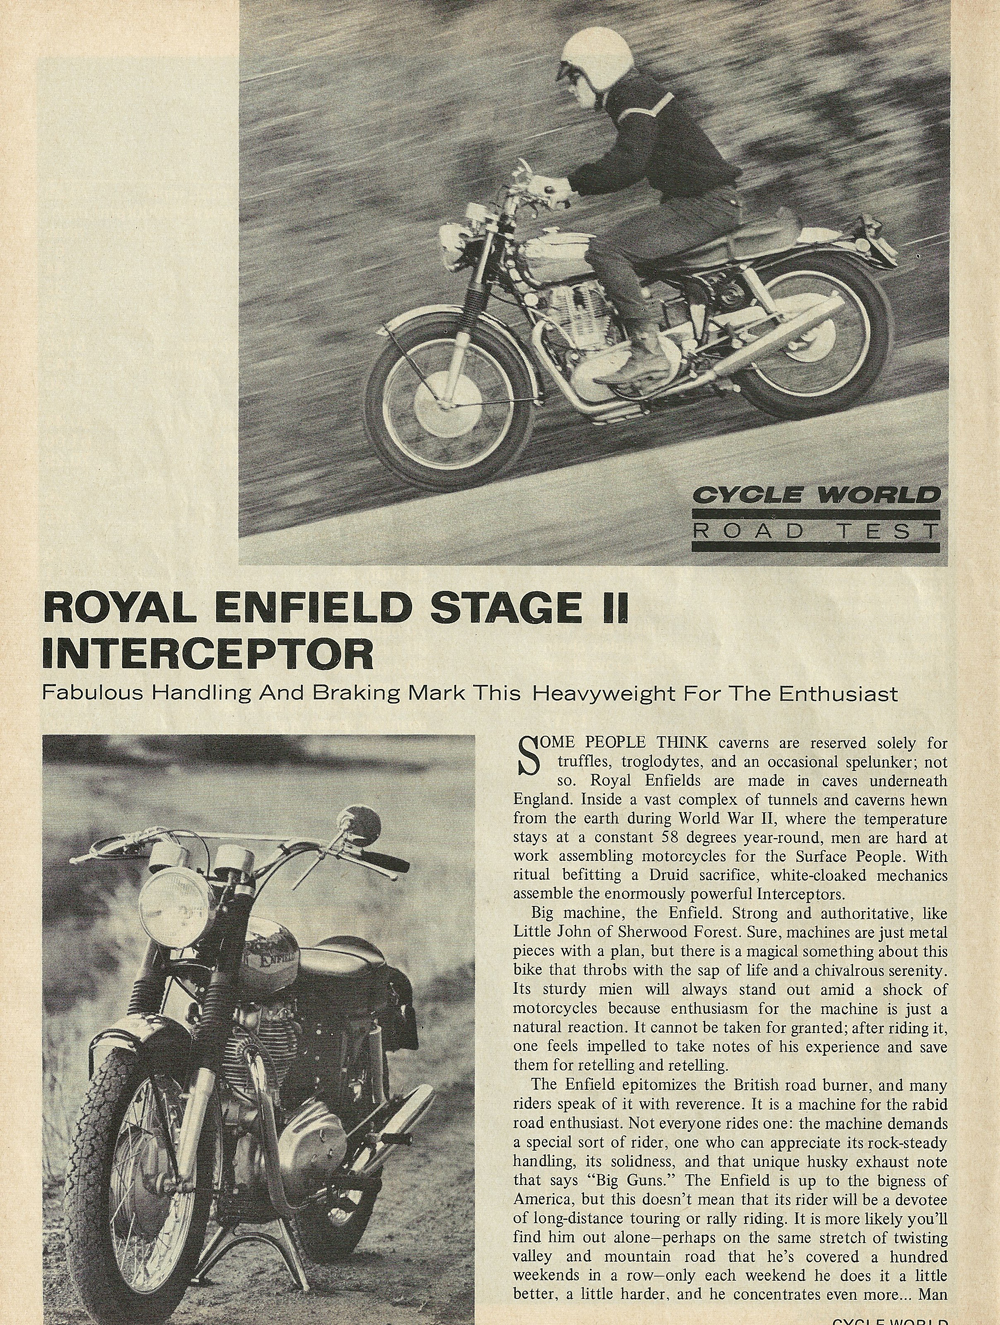 1969 Royal Enfield Stage 2 Interceptor road test 1.jpg